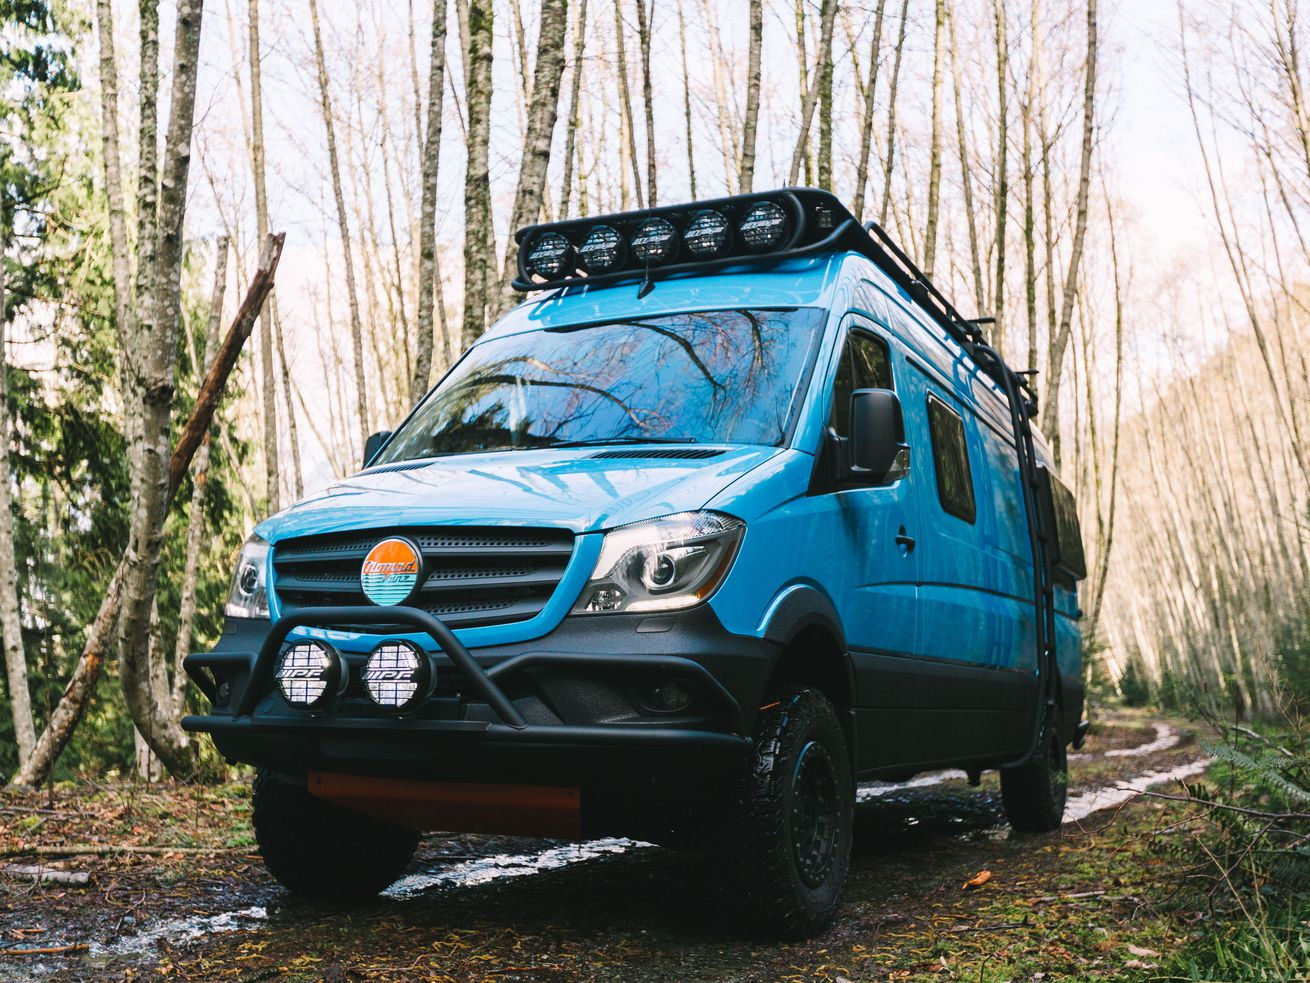 """The <a href=""""http://nomadvanz.com/gallery/beautiful-custom-vanz/out-of-the-blue/"""" target=""""_blank"""">Out of the Blue</a> camper van by <a href=""""http://nomadvanz.com/"""" target=""""_blank"""">Nomad Vanz</a>."""